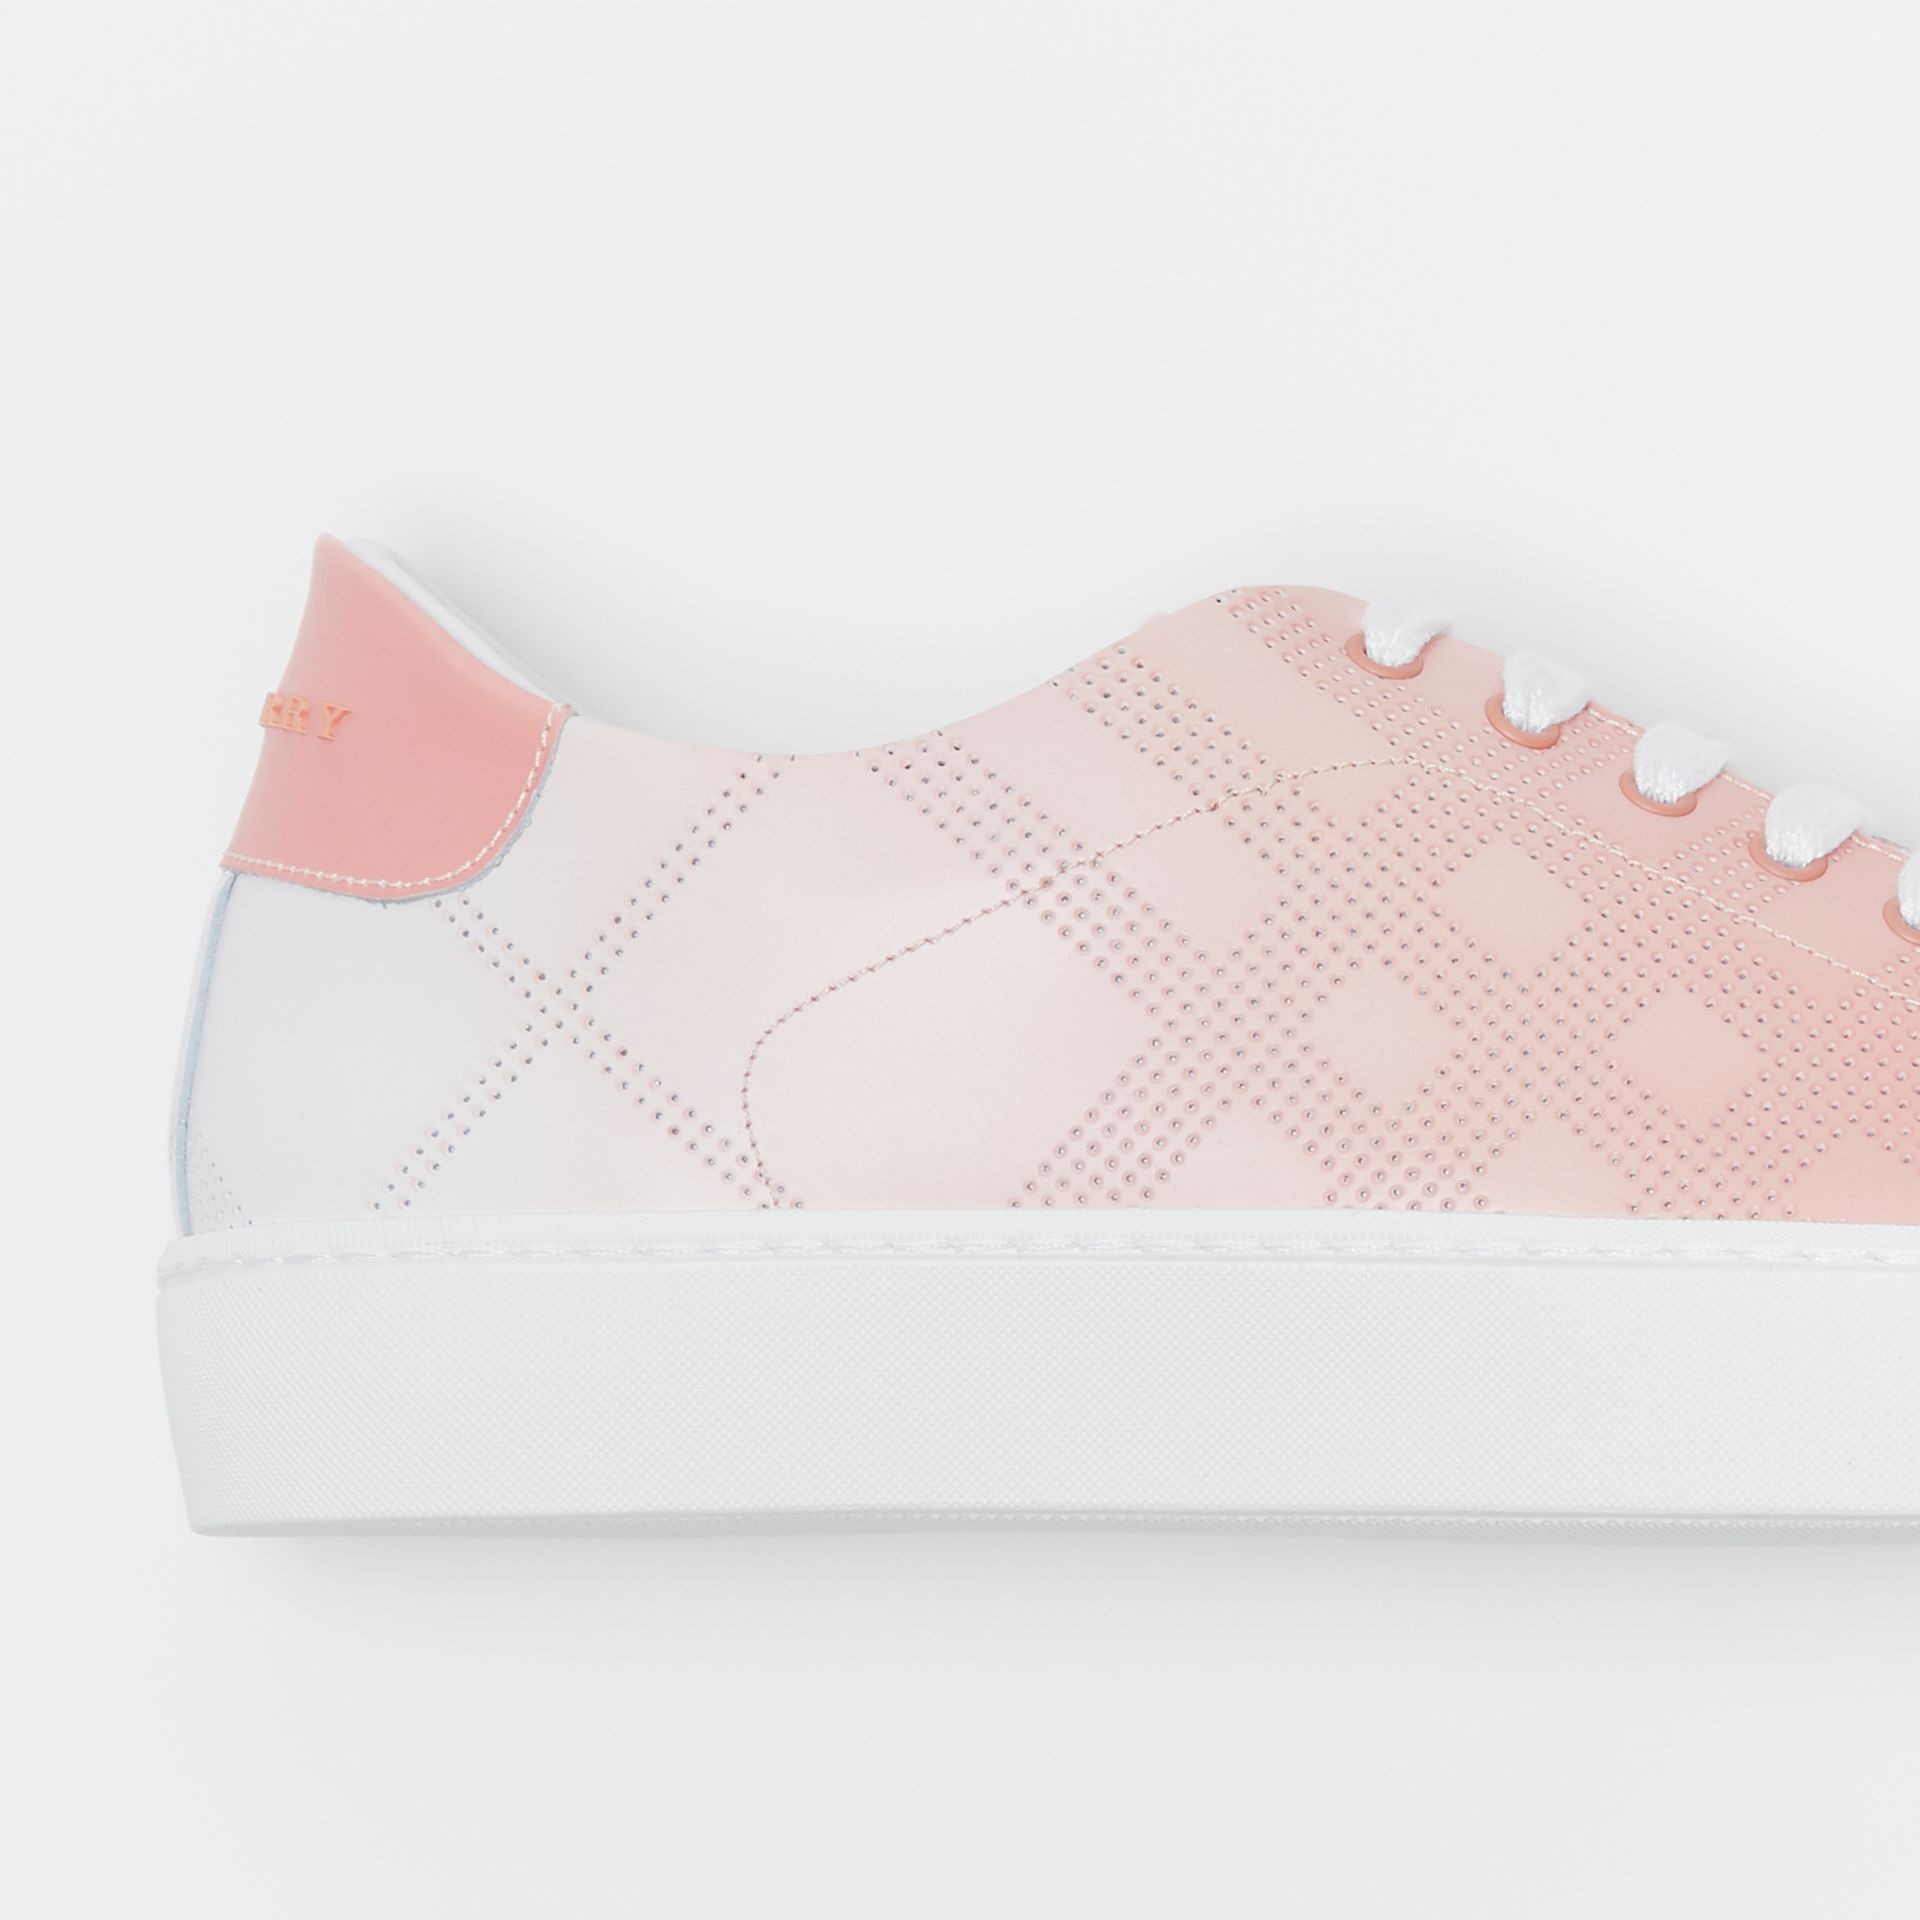 Sneakers en cuir avec dégradé et motif check perforé (Rose Sucré) - Femme | Burberry - photo de la galerie 1